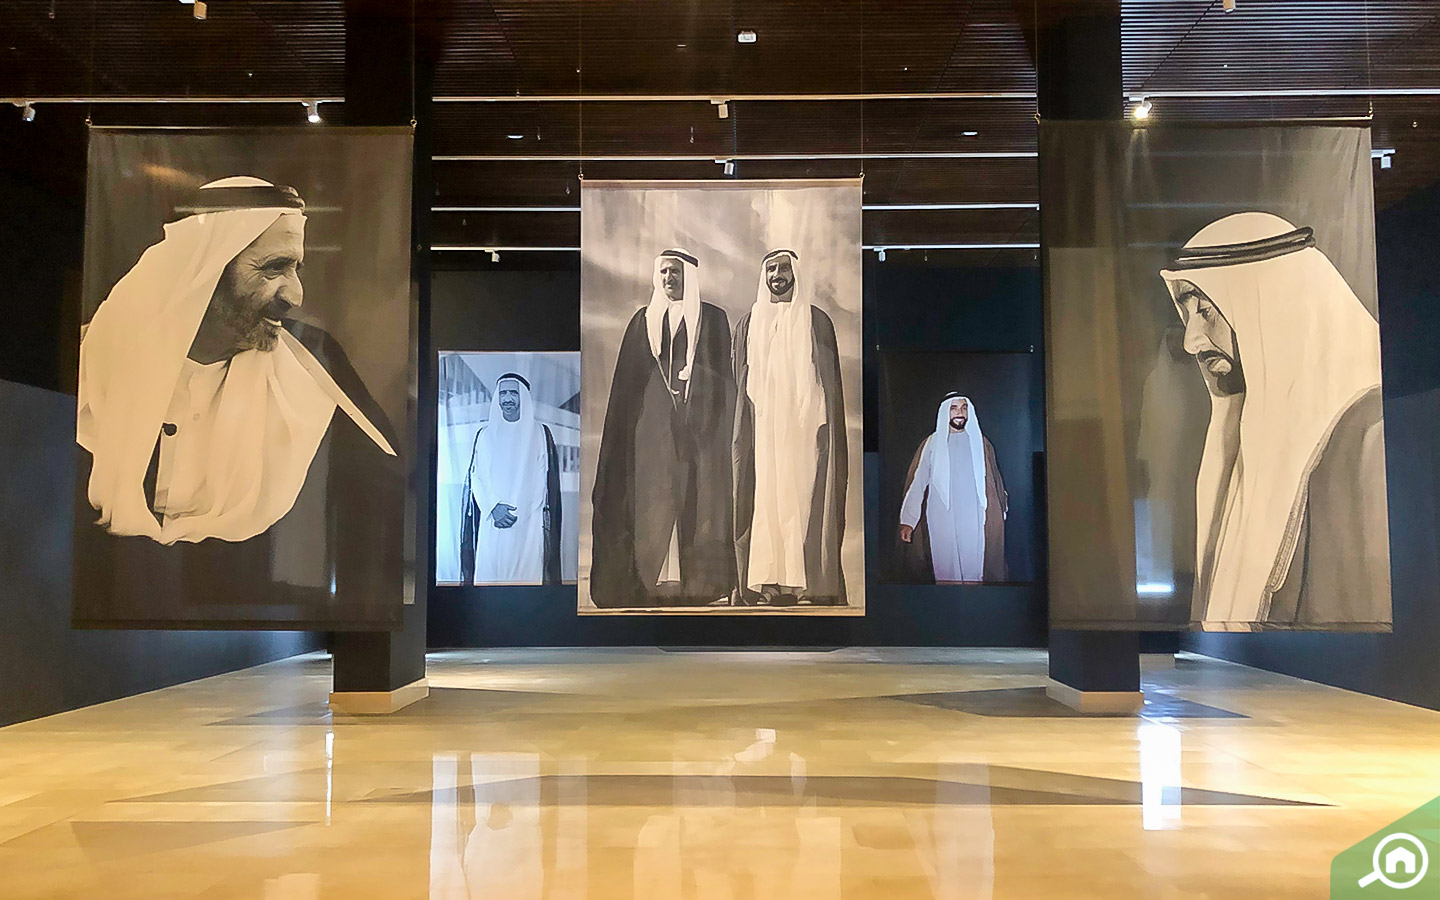 and inside look at the Etihad Museum in Jumeirah